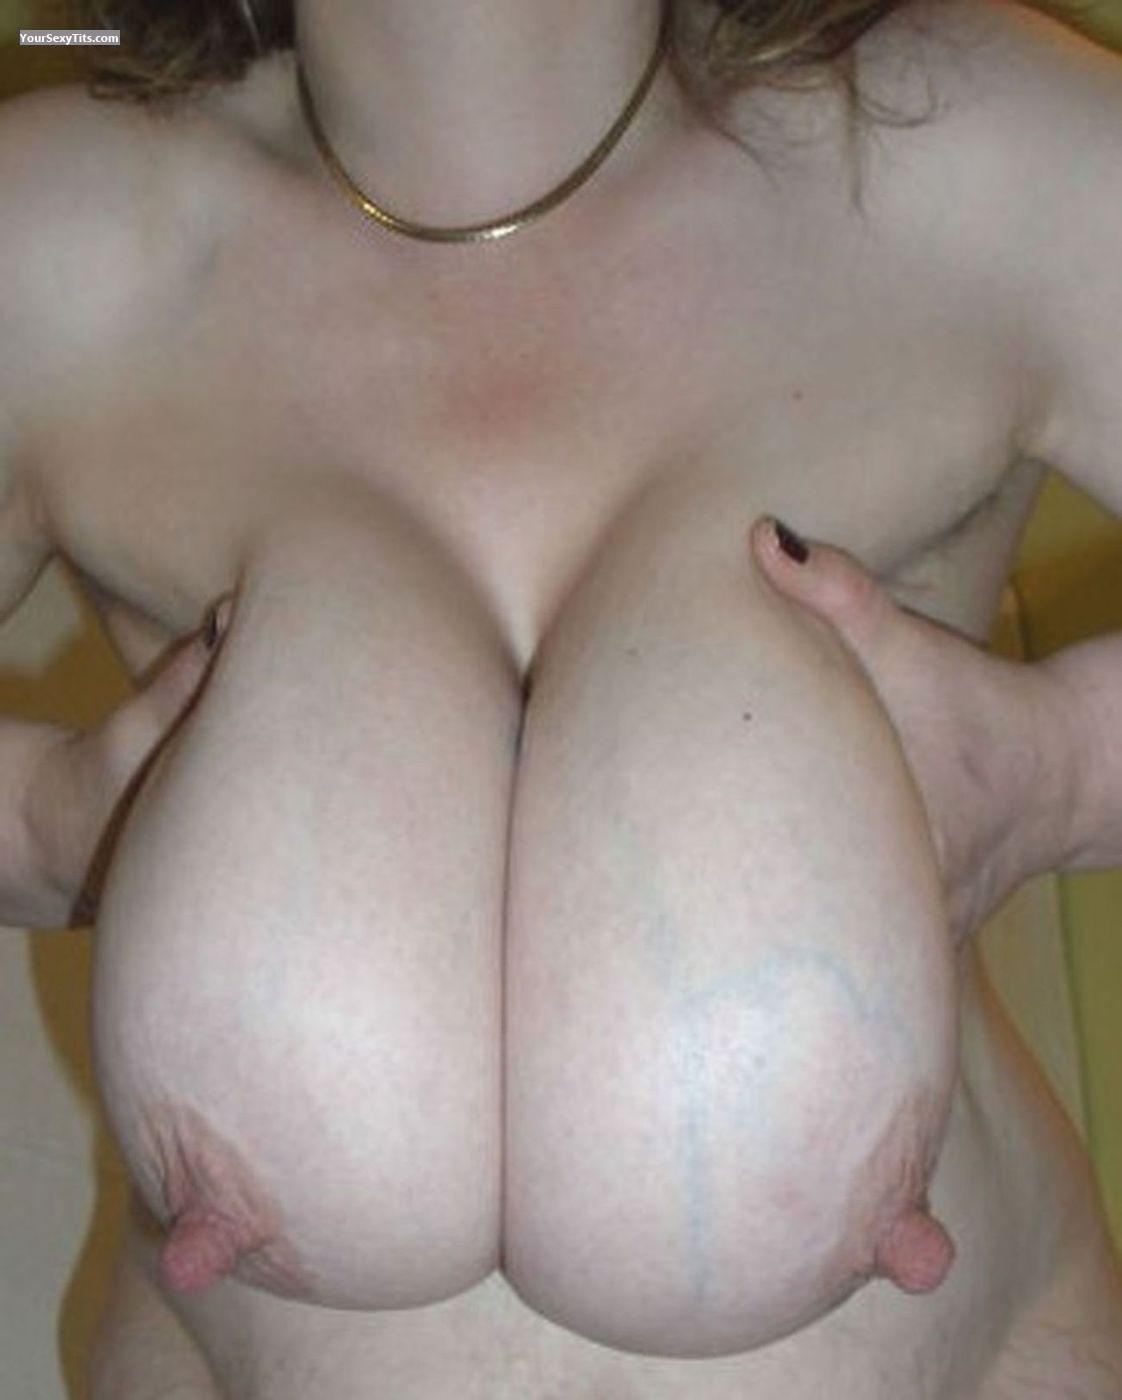 Tit Flash: Very Big Tits - Nips from Germany